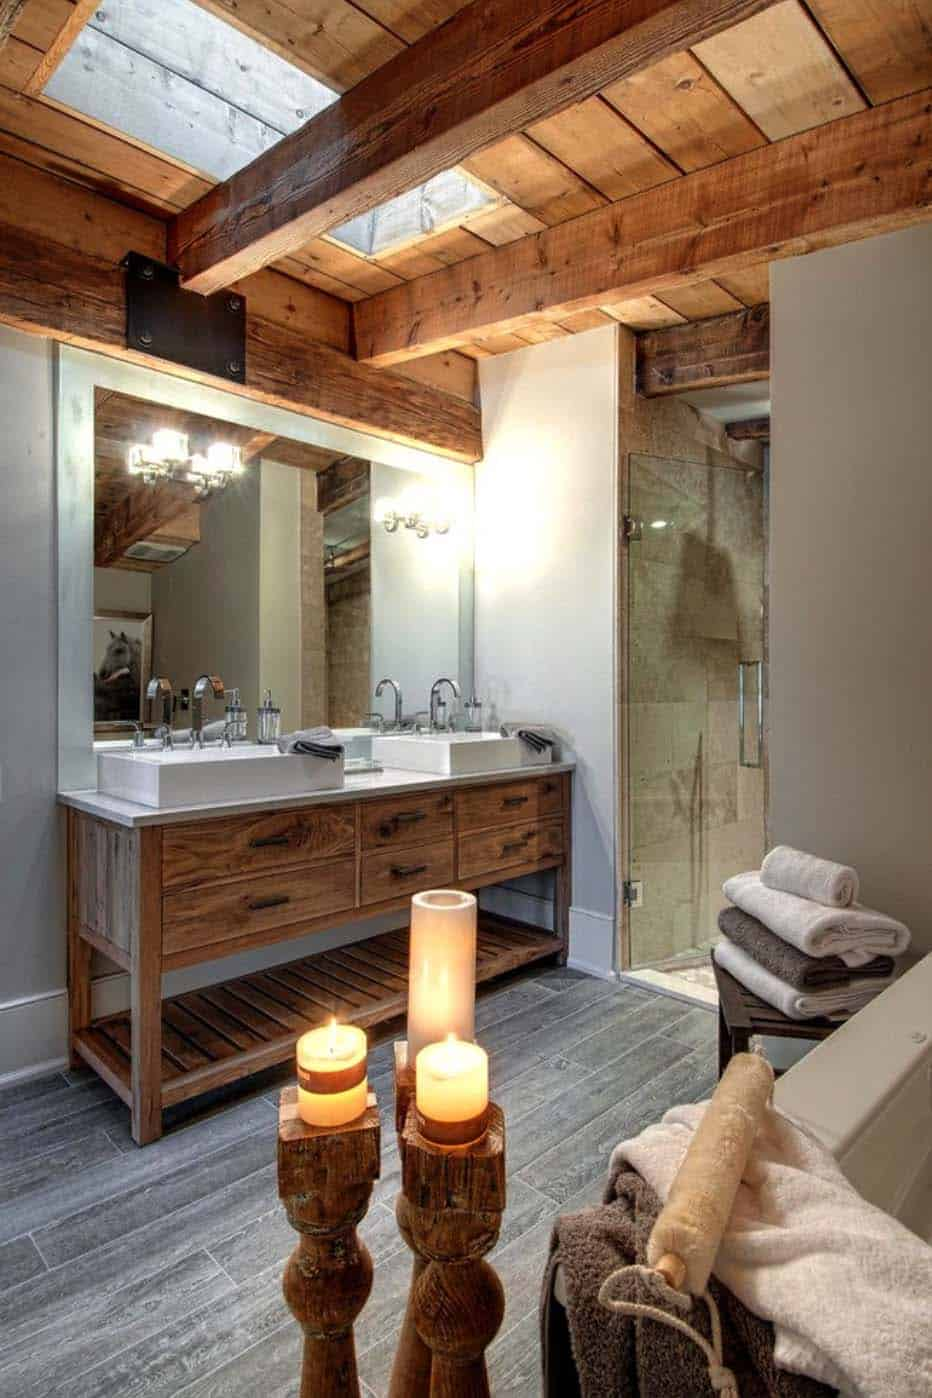 Rustic-Modern-Design-Timberworx Custom Homes-22-1 Kindesign